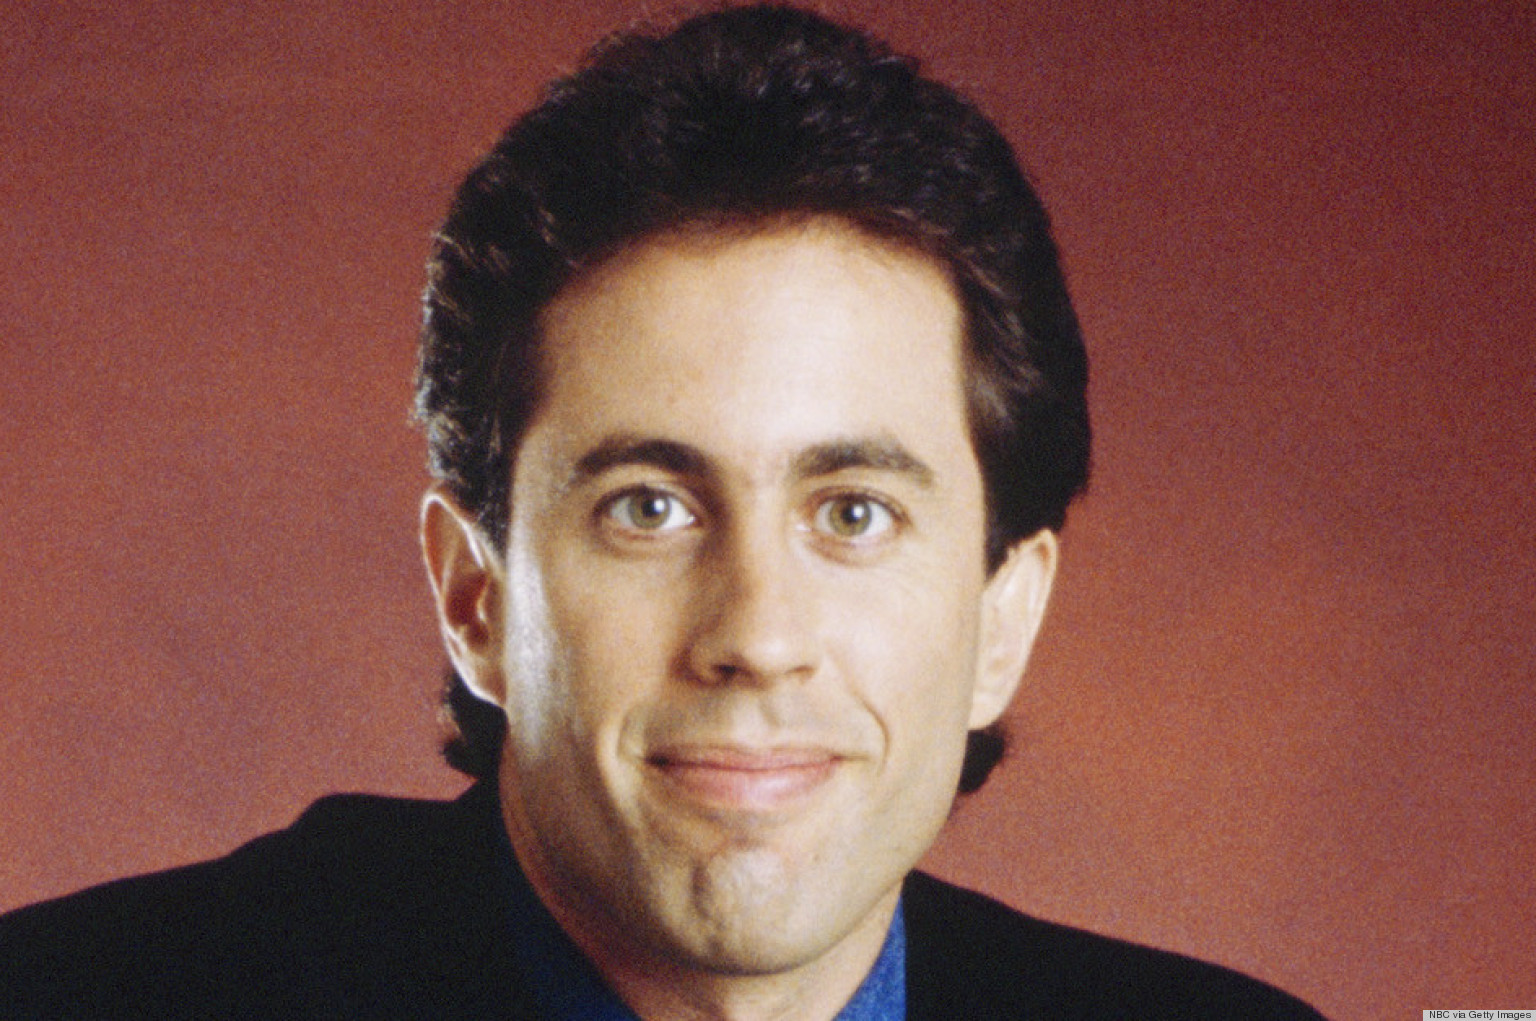 JERRY SEINFELD TO APPEAR ON STAGE AT LUTHER BURBANK CENTER FOR THE ARTS